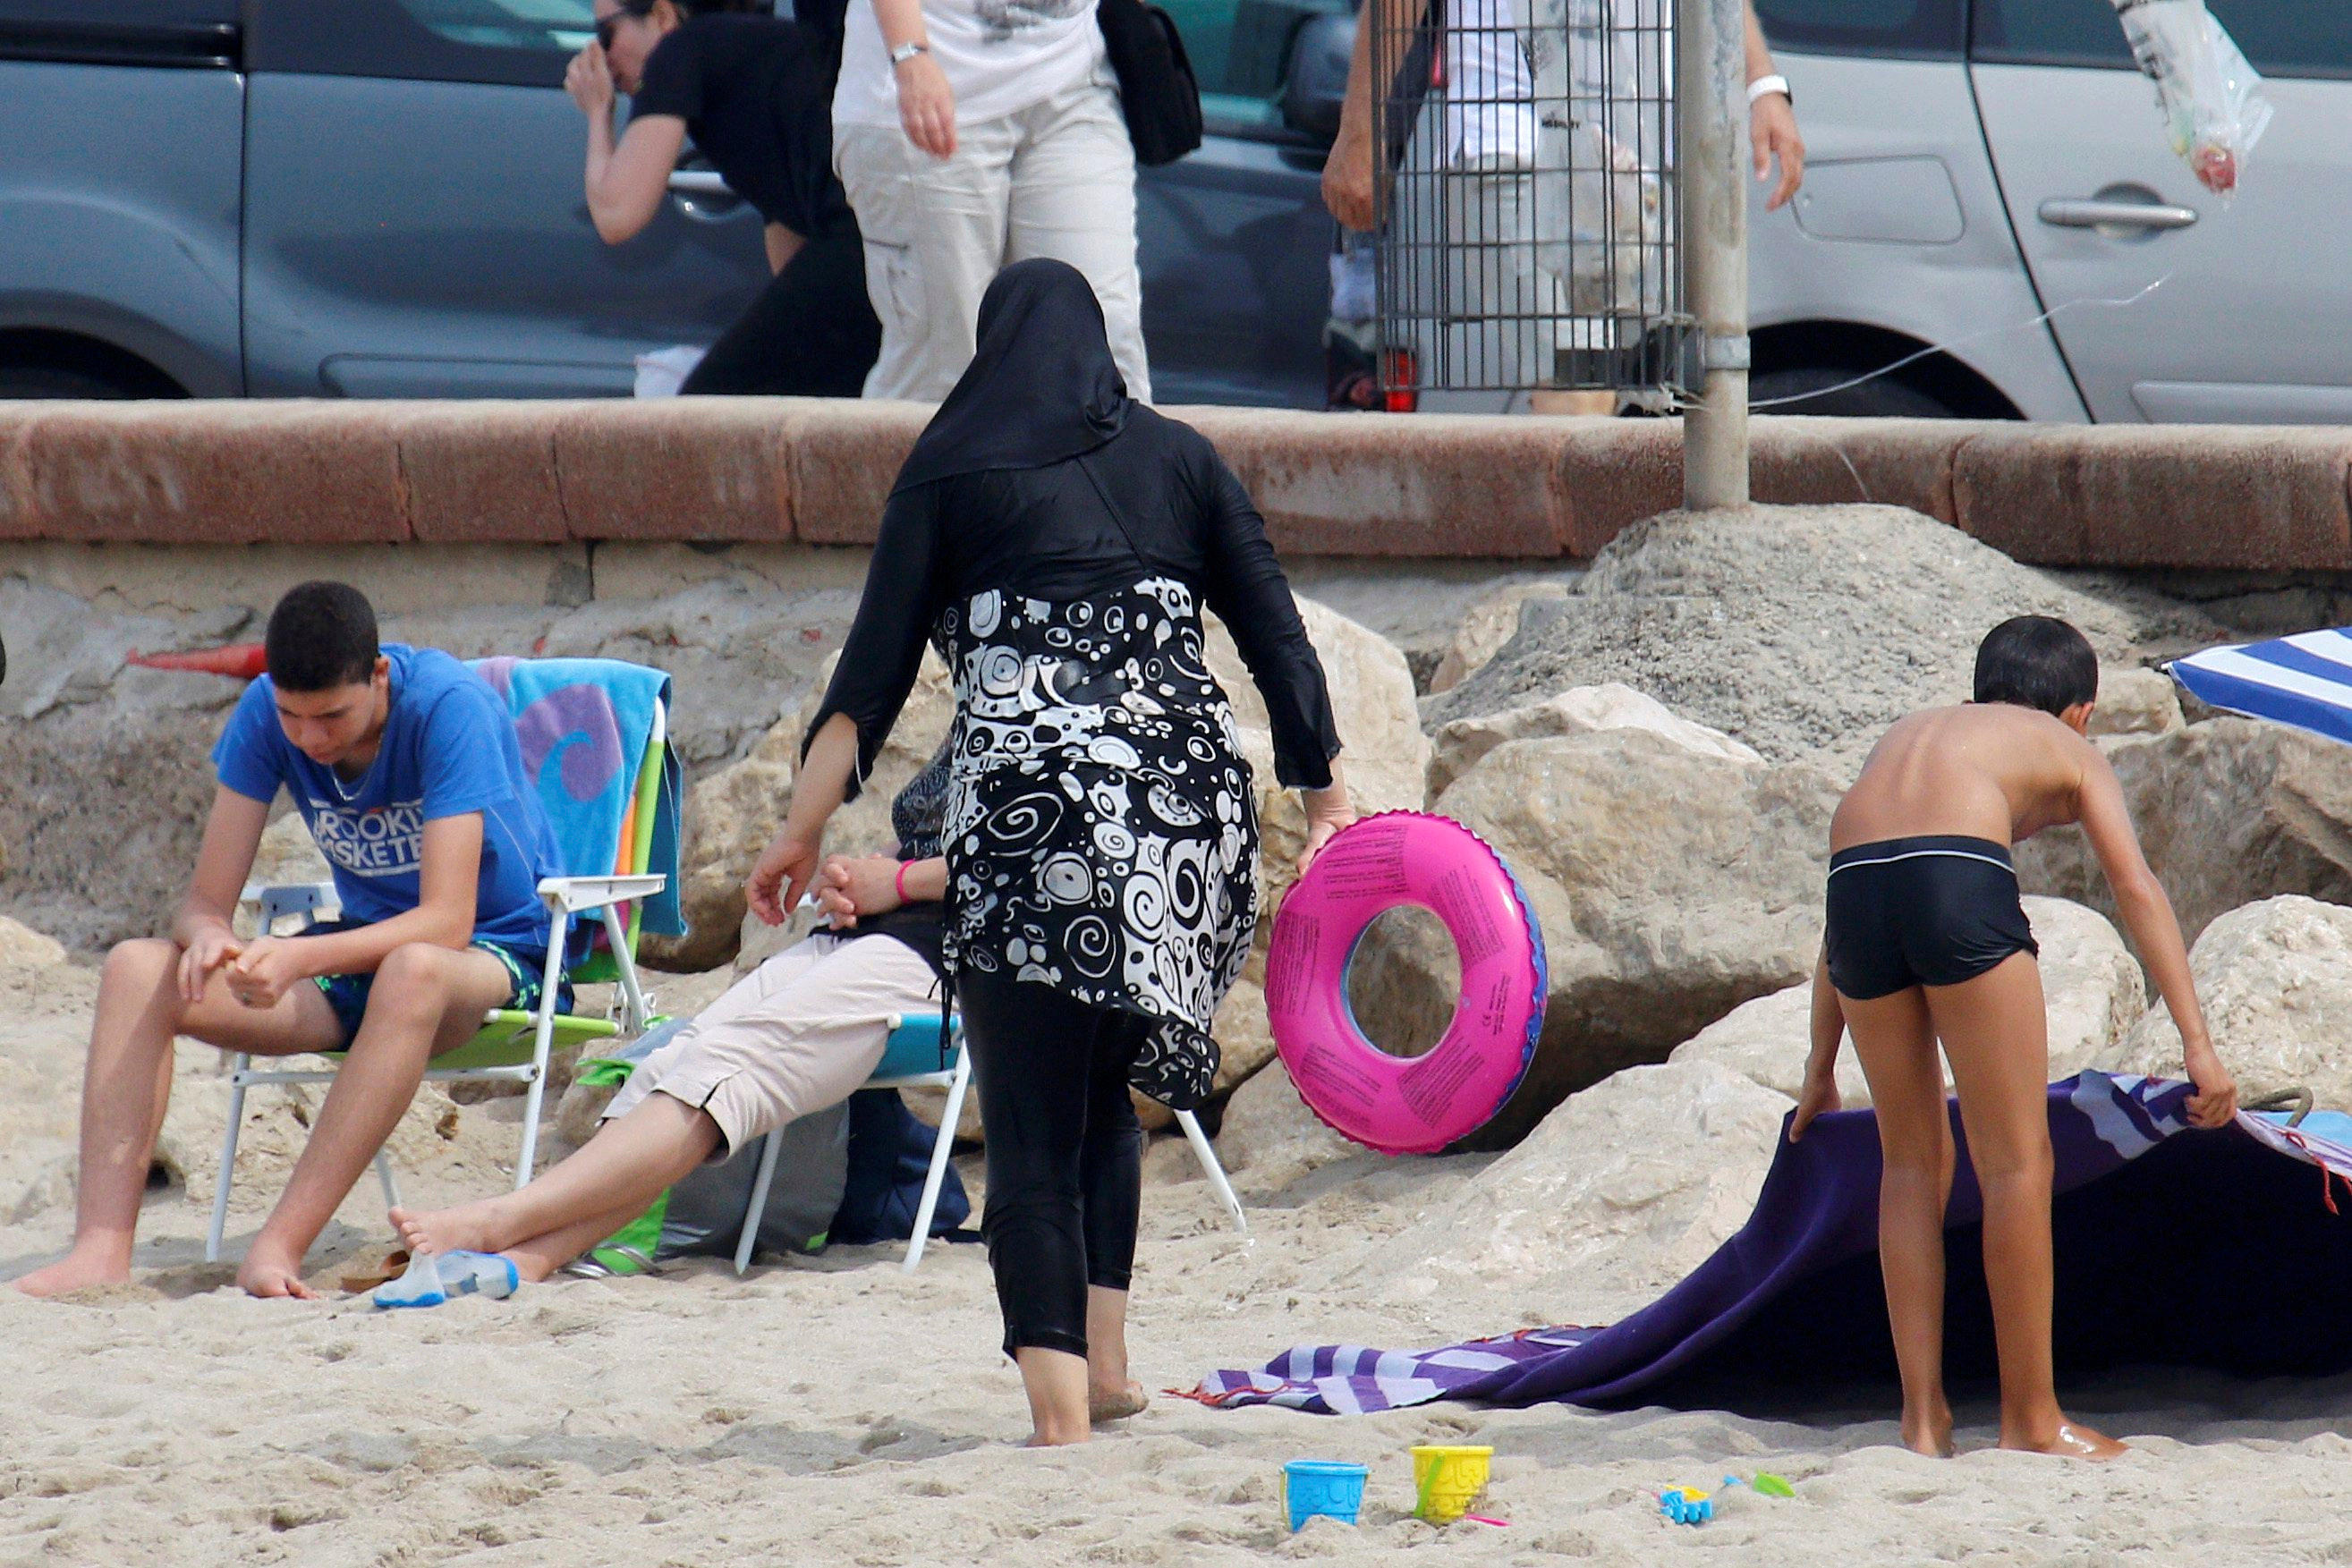 4e1d446050d France burkini bans in Nice, Marseille, justifiable security against ...